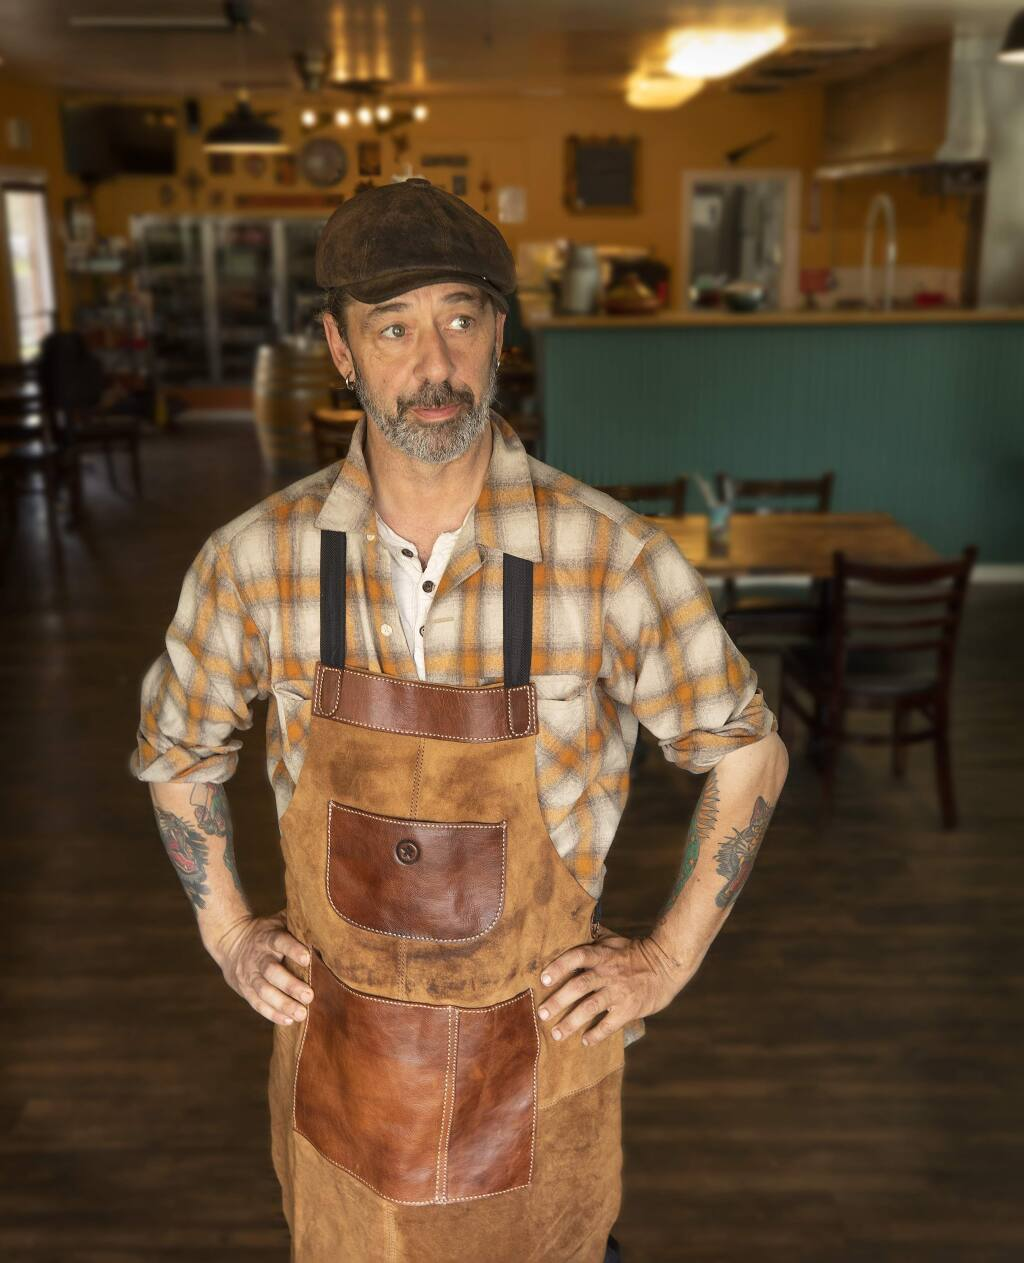 Butcher Crown Roadhouse owner/chef and pretty much anything else Pete Schnell. (photo by John Burgess/The Press Democrat)